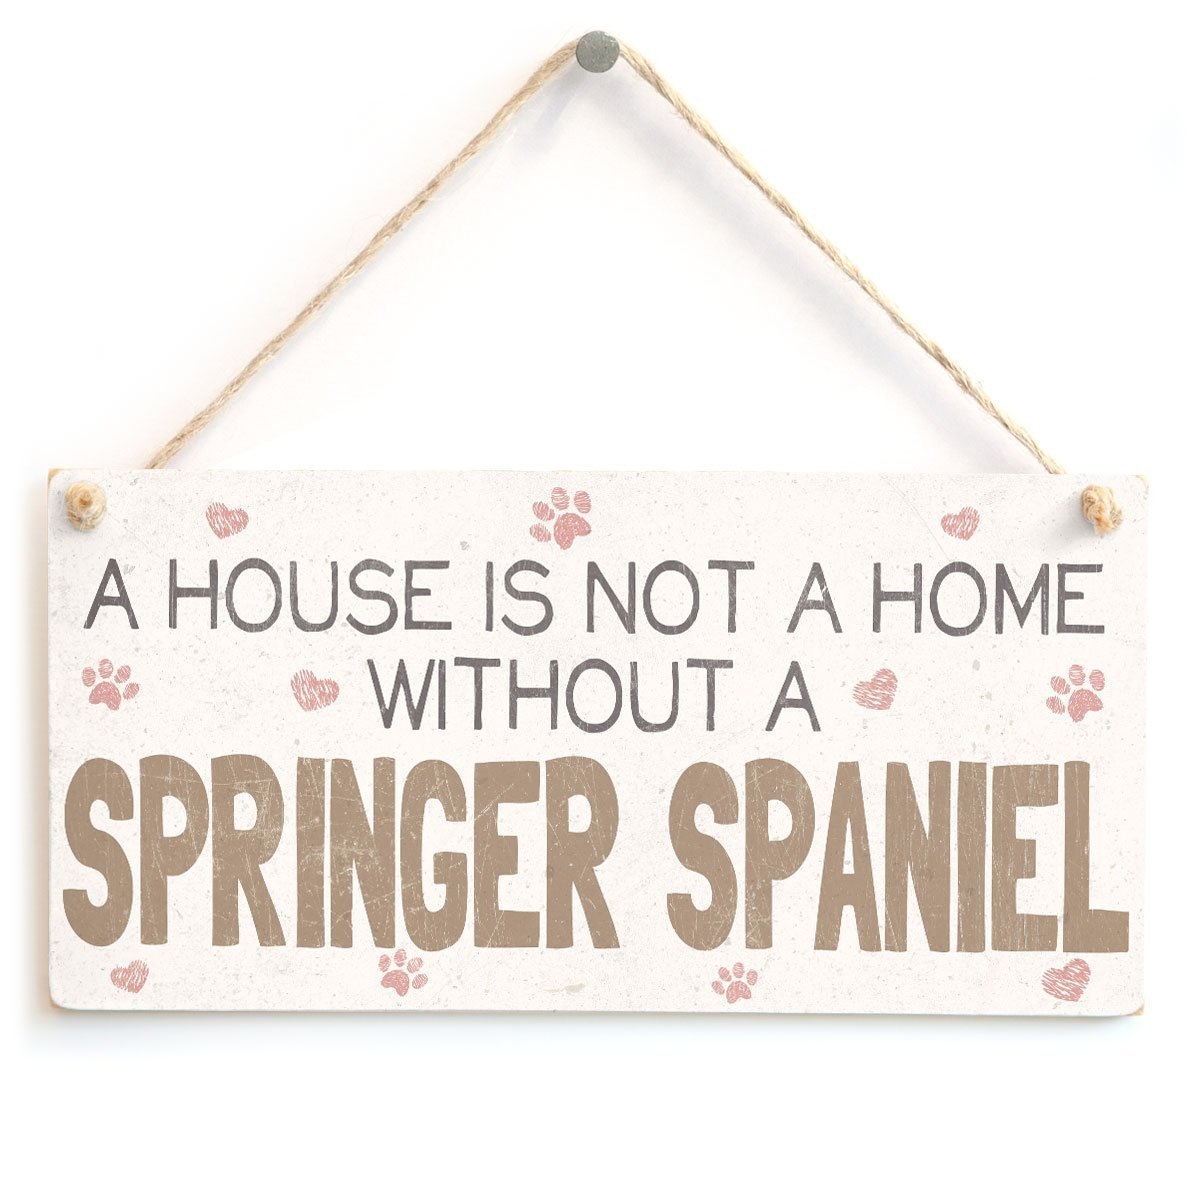 Beautiful Home Accessory Gift Sign for Springer Spaniel Dog Owners 10x5 Meijiafei All You Need is Love and A Springer Spaniel